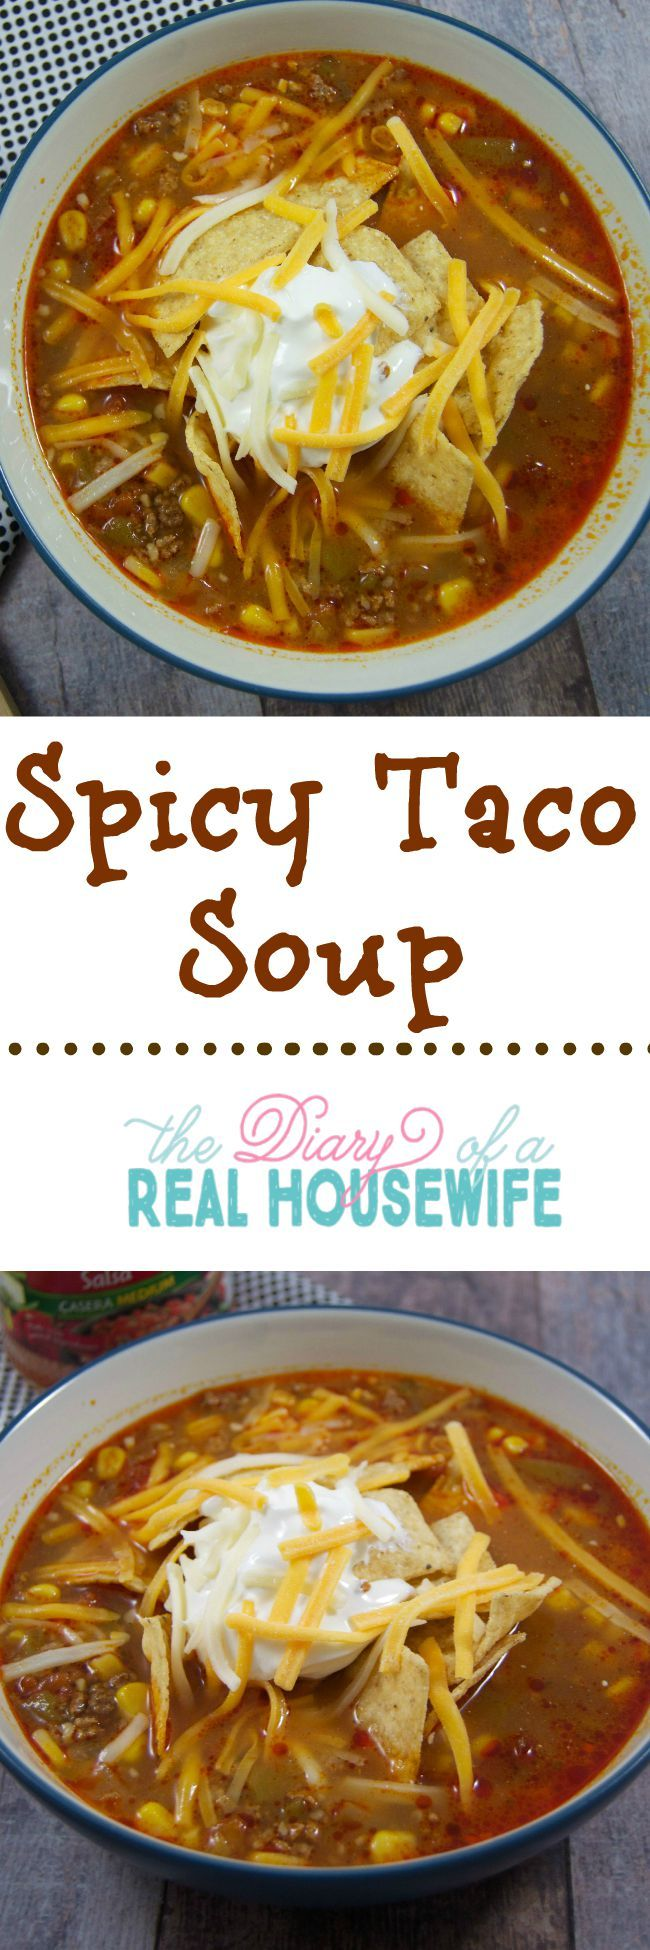 Spicy taco soup, this is great!